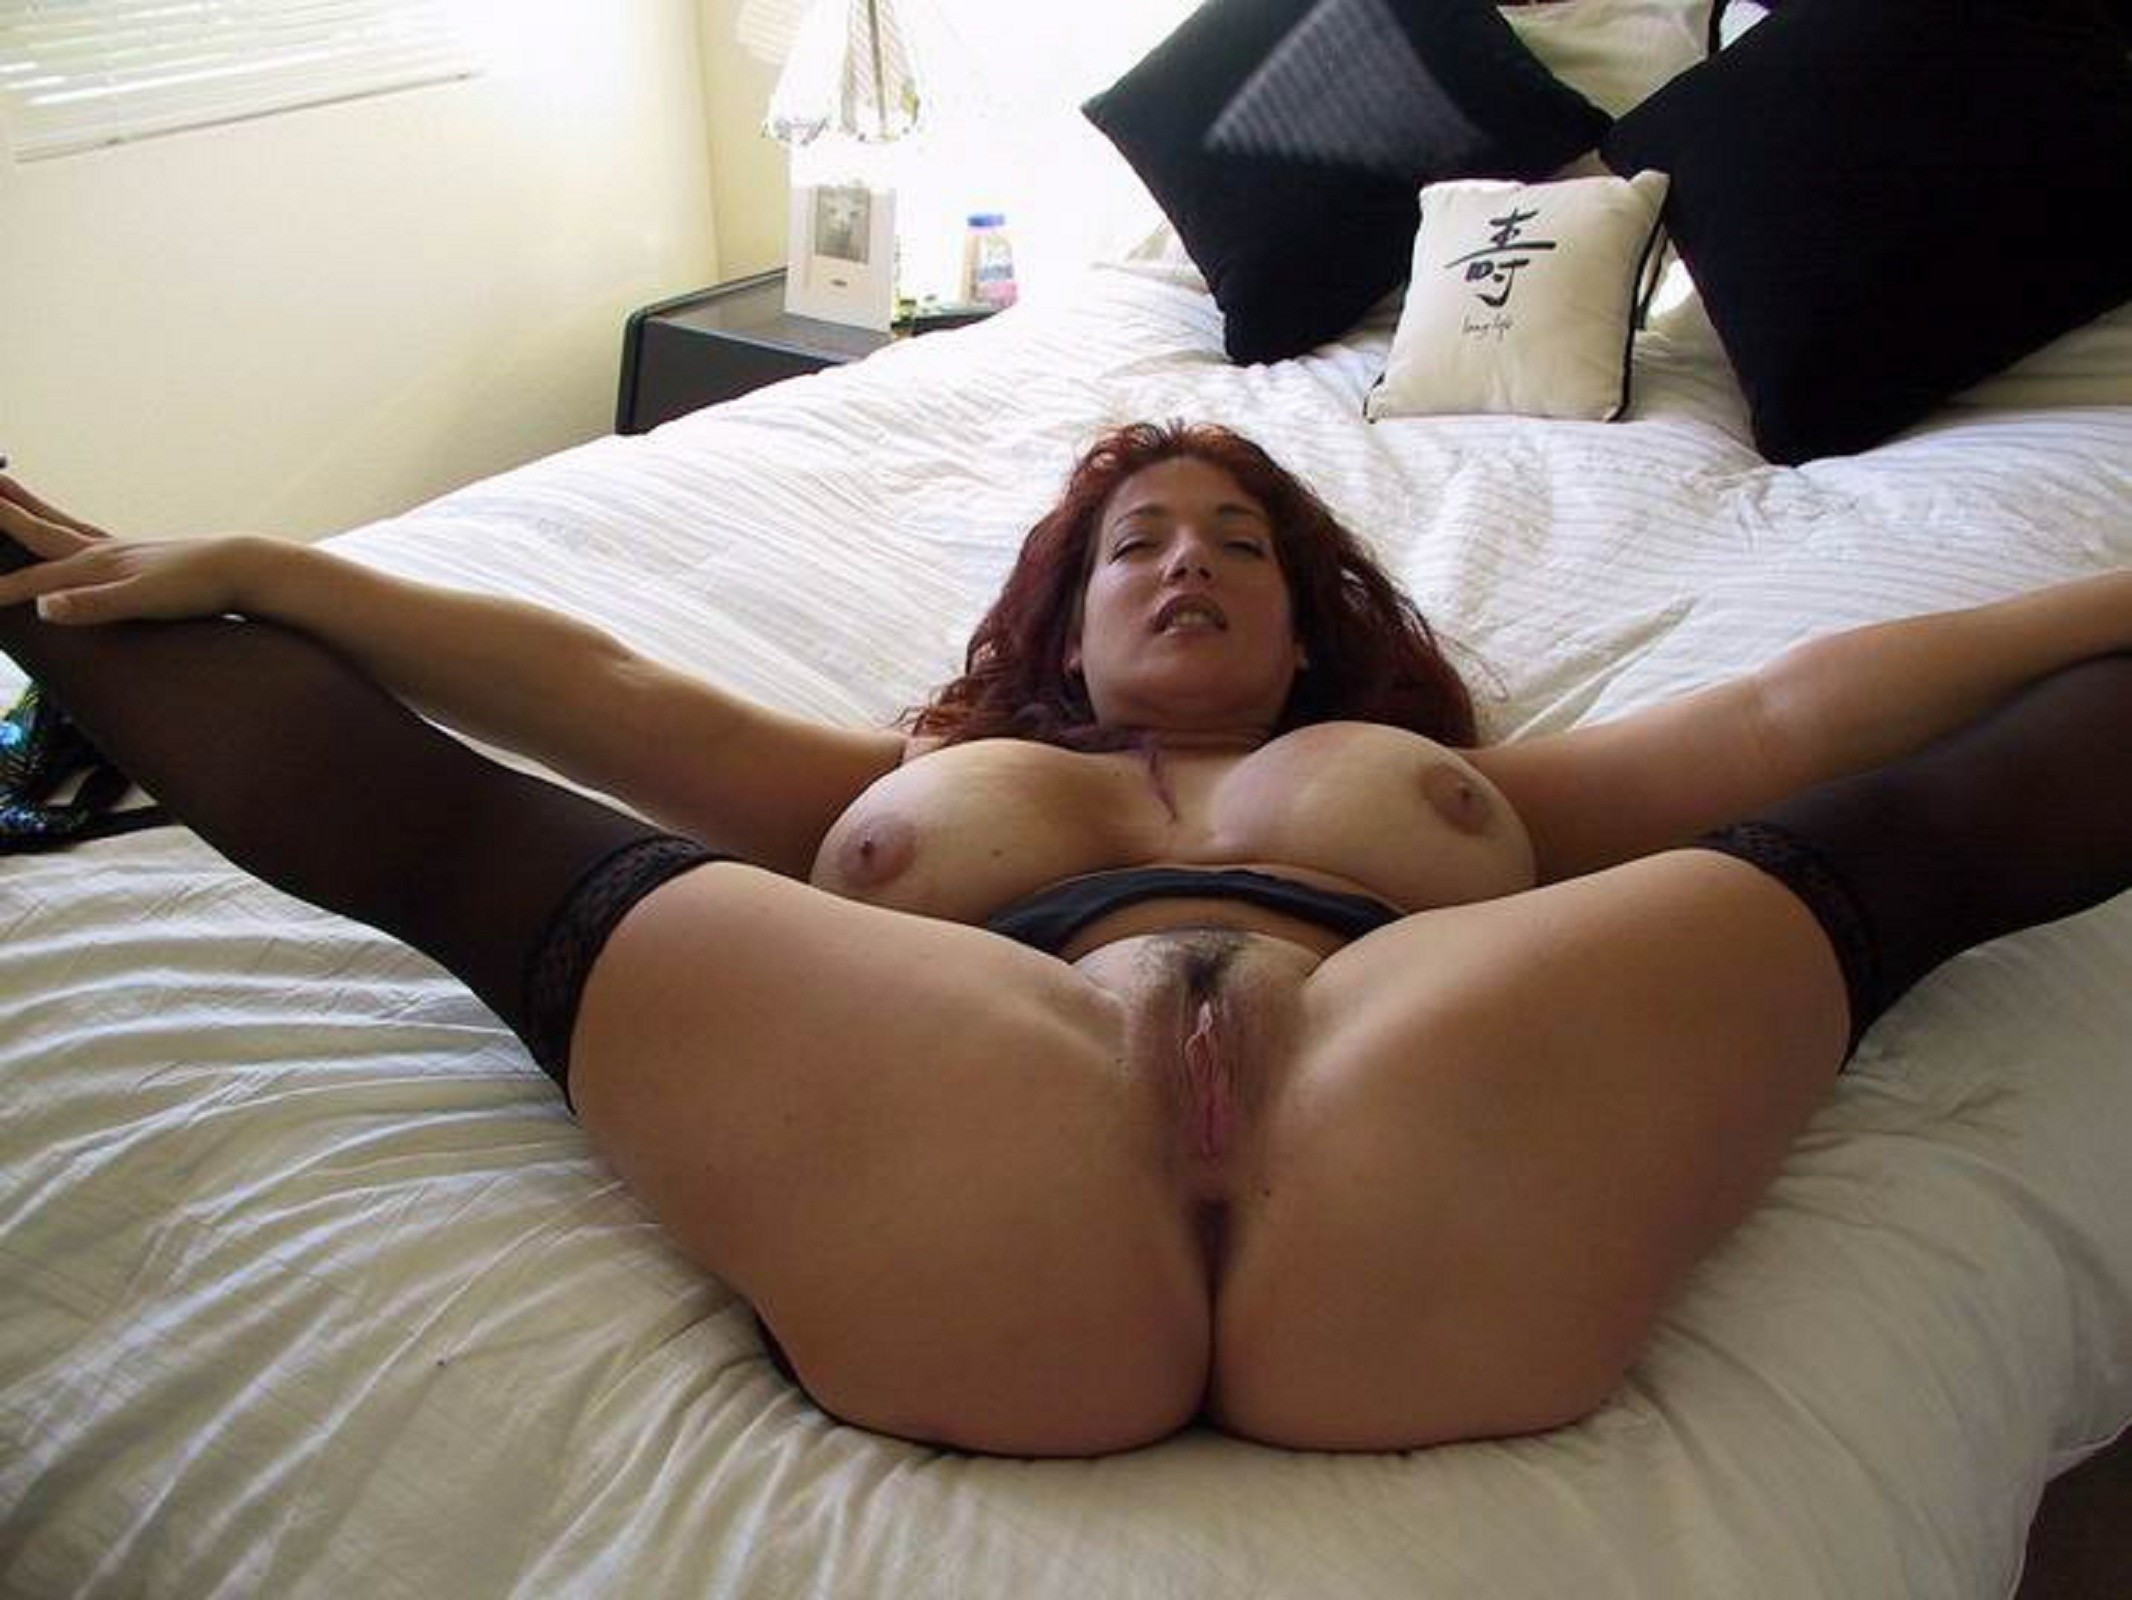 Chubby pussy spread wide